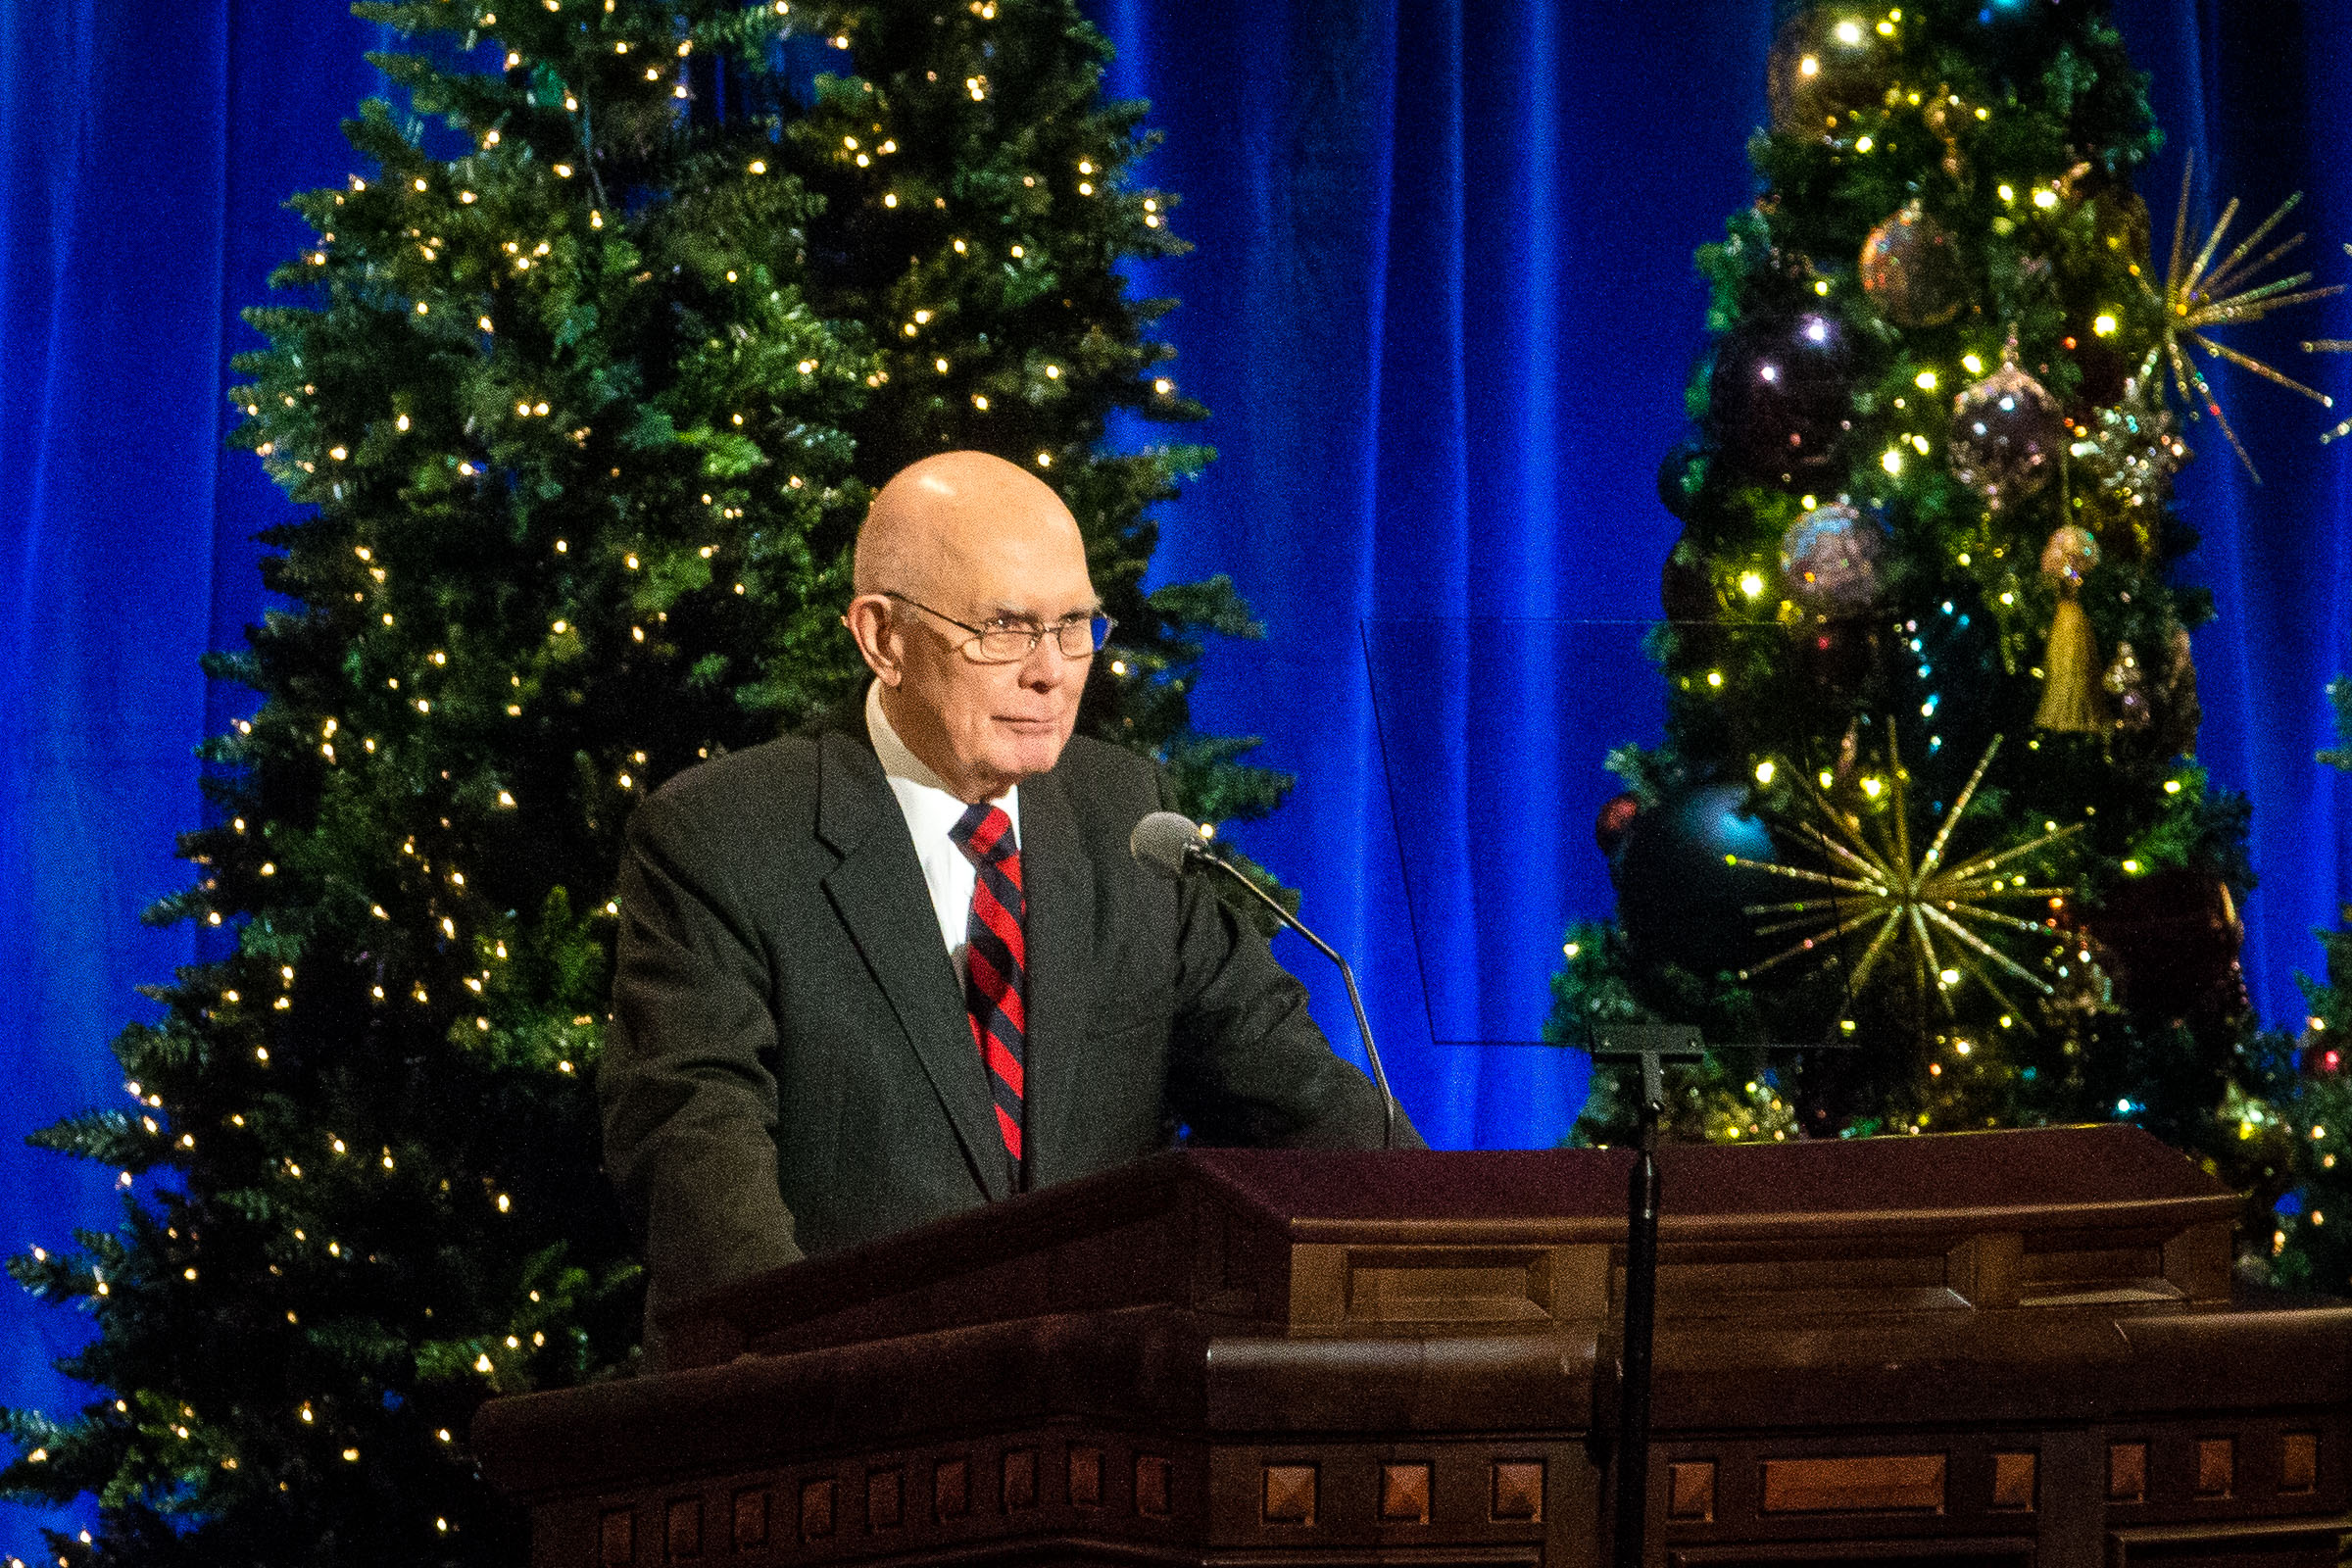 President Dallin H. Oaks, first counselor in the First Presidency, conducts the First Presidency's Christmas Devotional in the Conference Center in Salt Lake City on Sunday, Dec. 2, 2018.